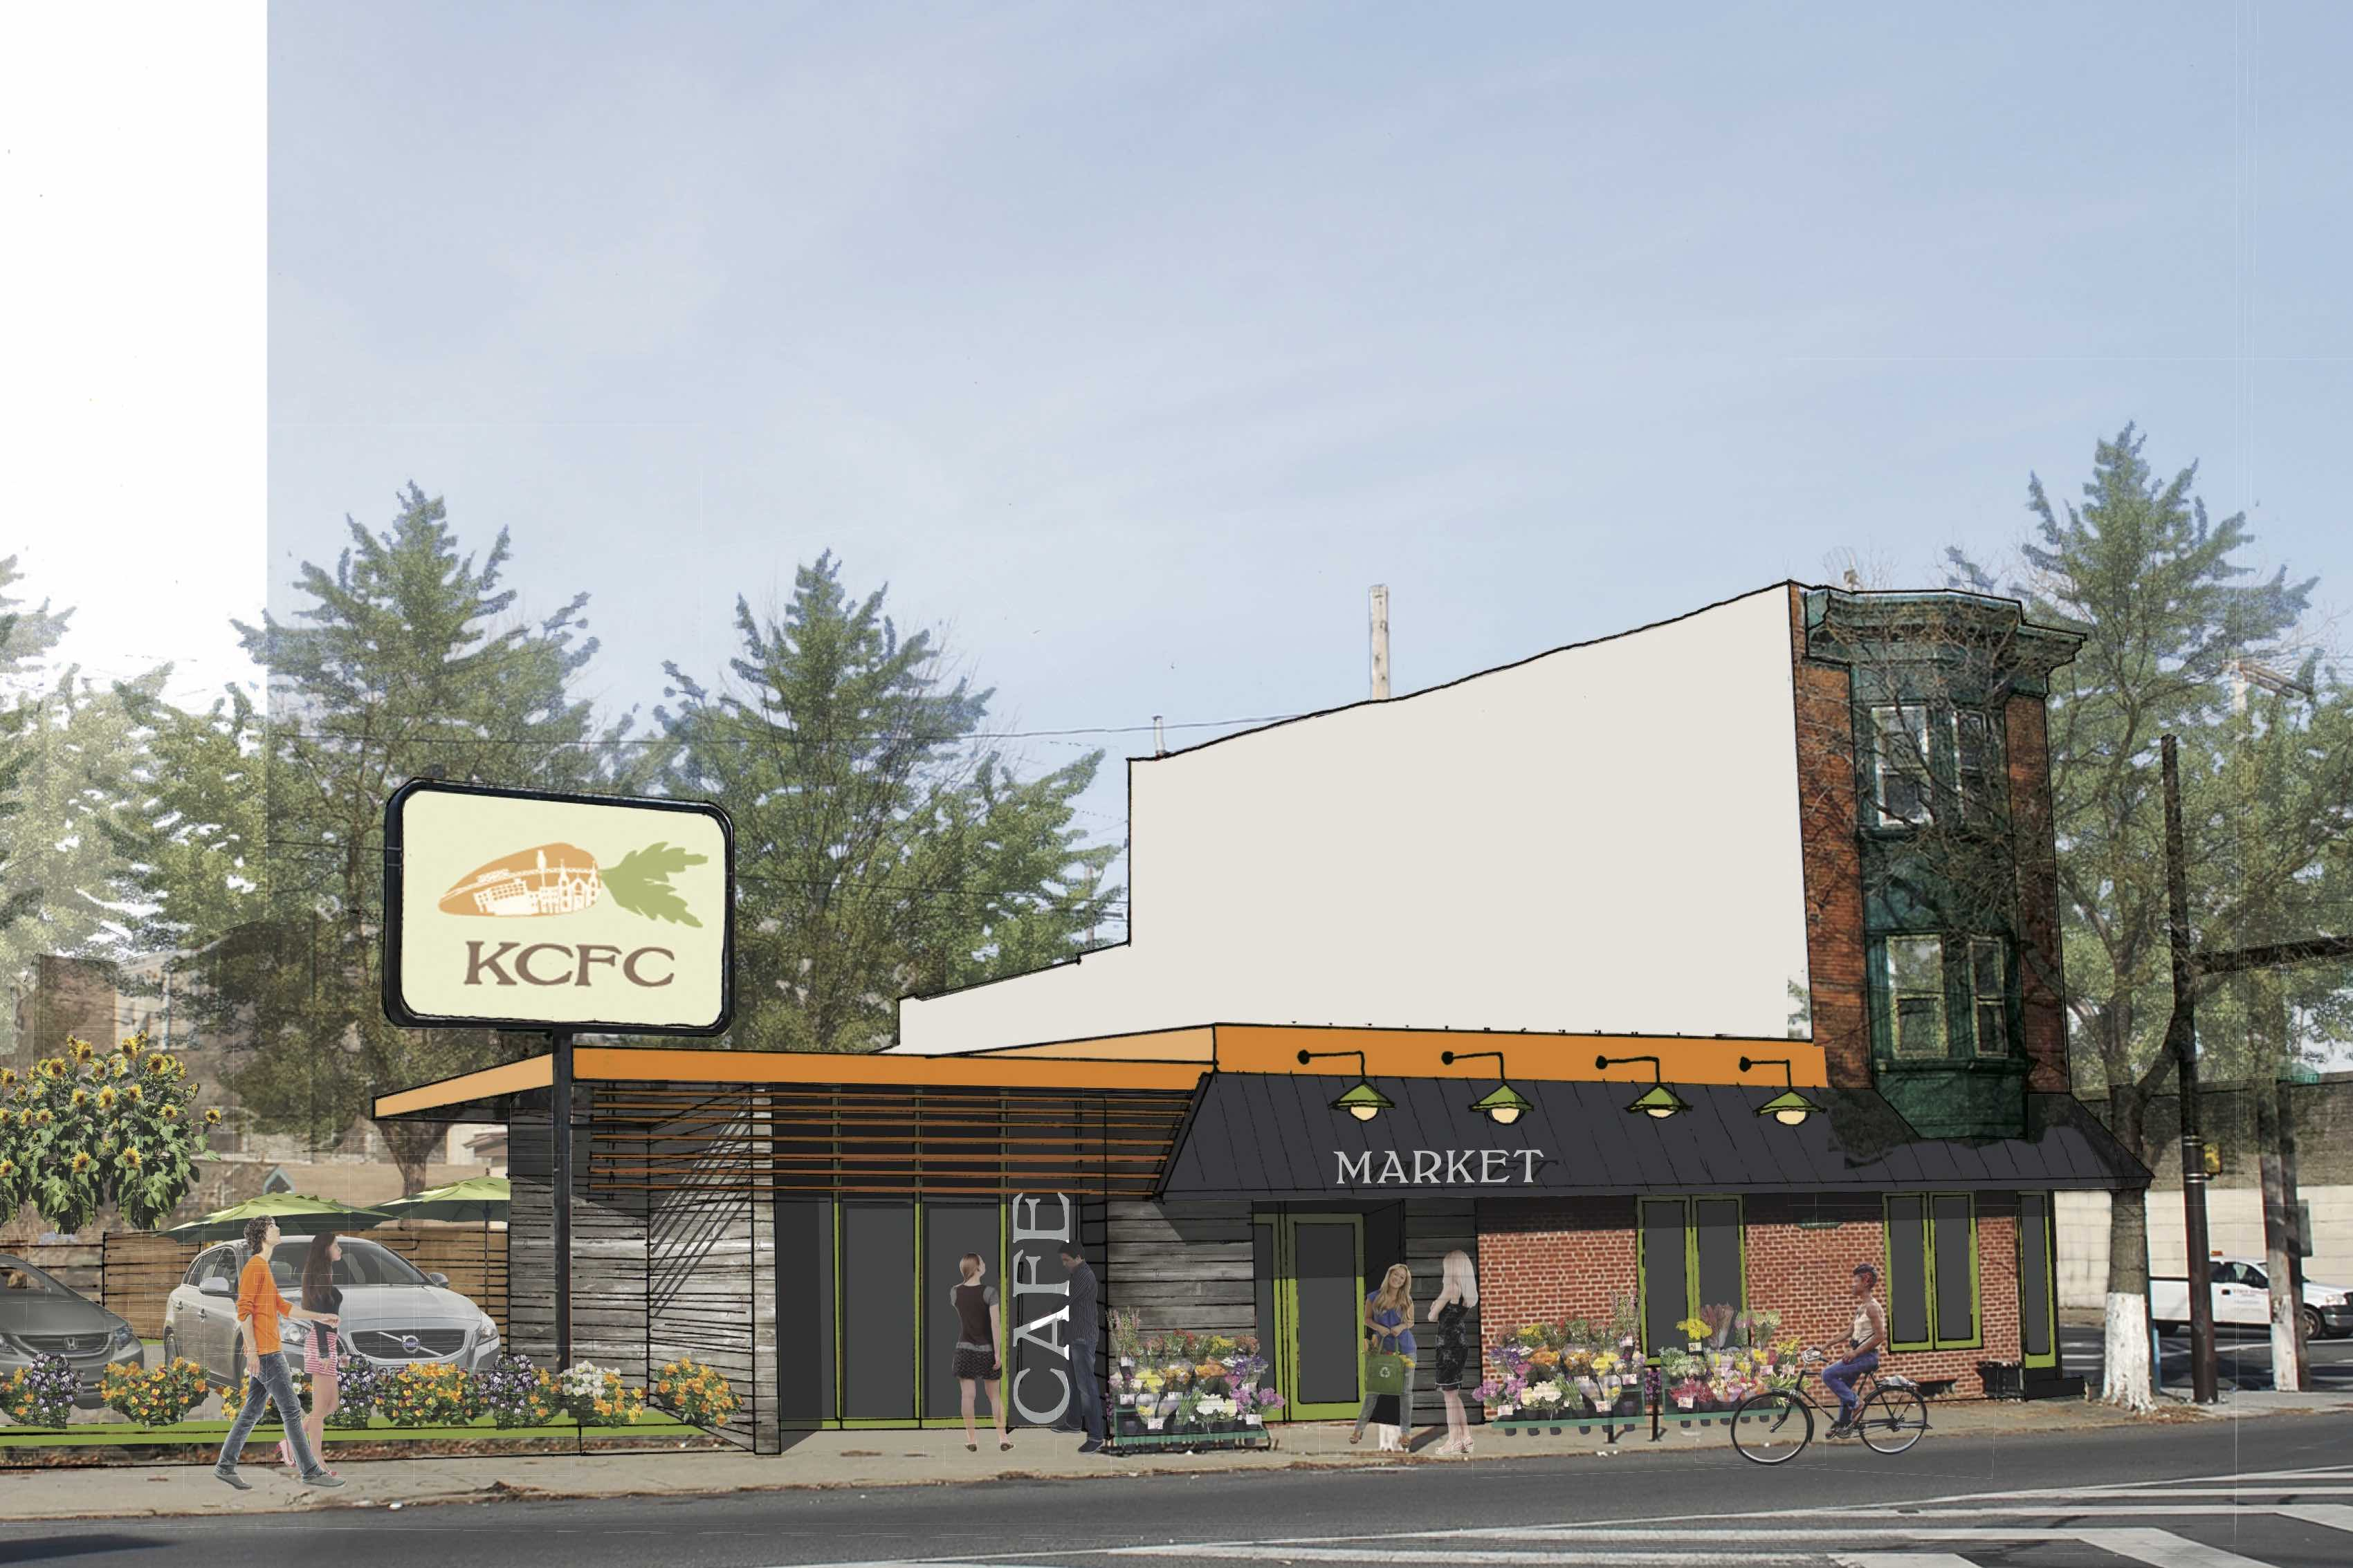 After More Than a Decade of Planning, Kensington Will Get Its First